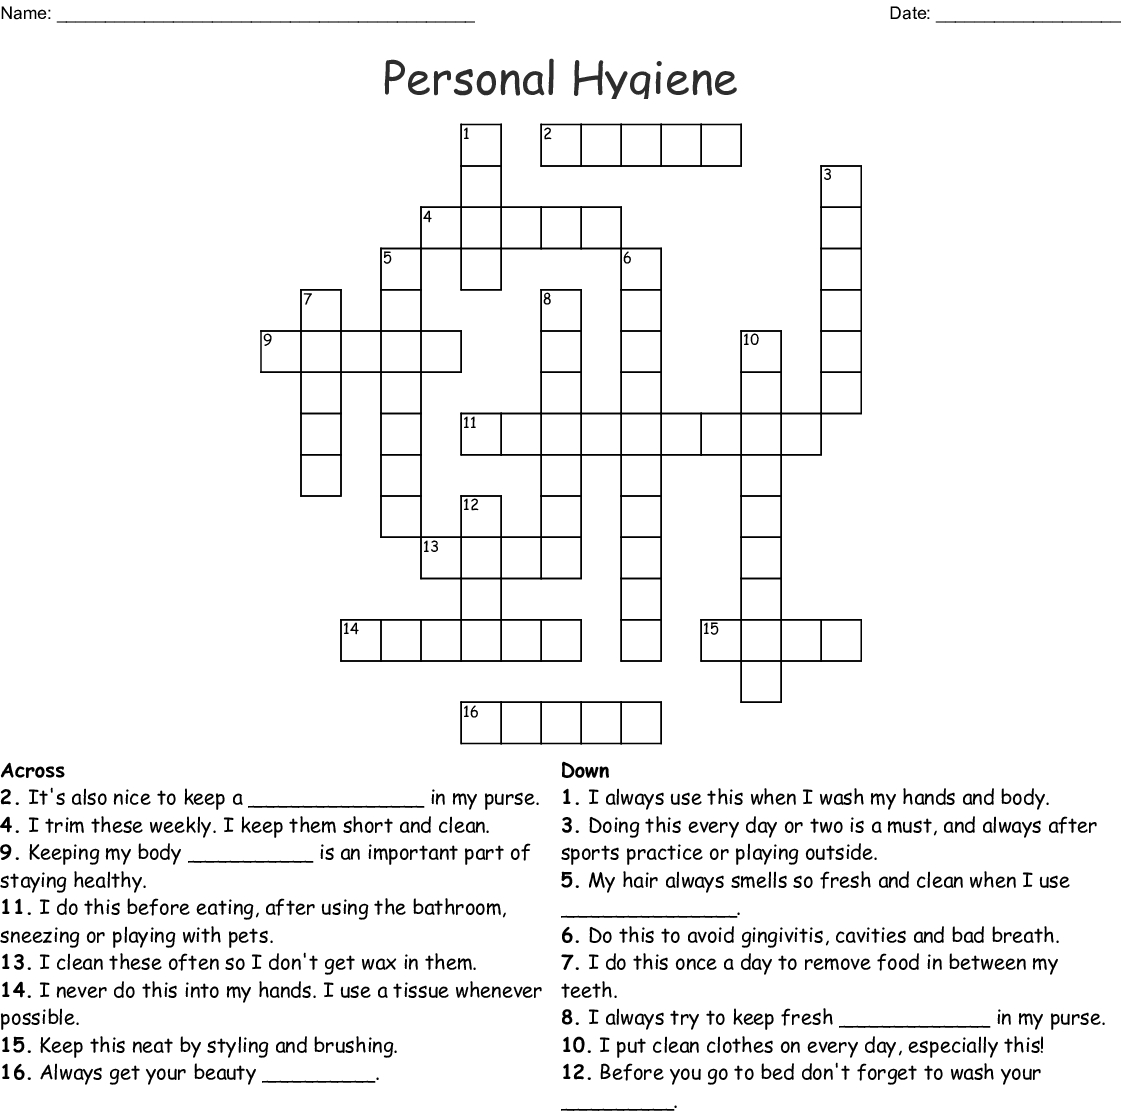 Personal Hygiene Crossword - Wordmint - Printable Personal Hygiene Crossword Puzzle